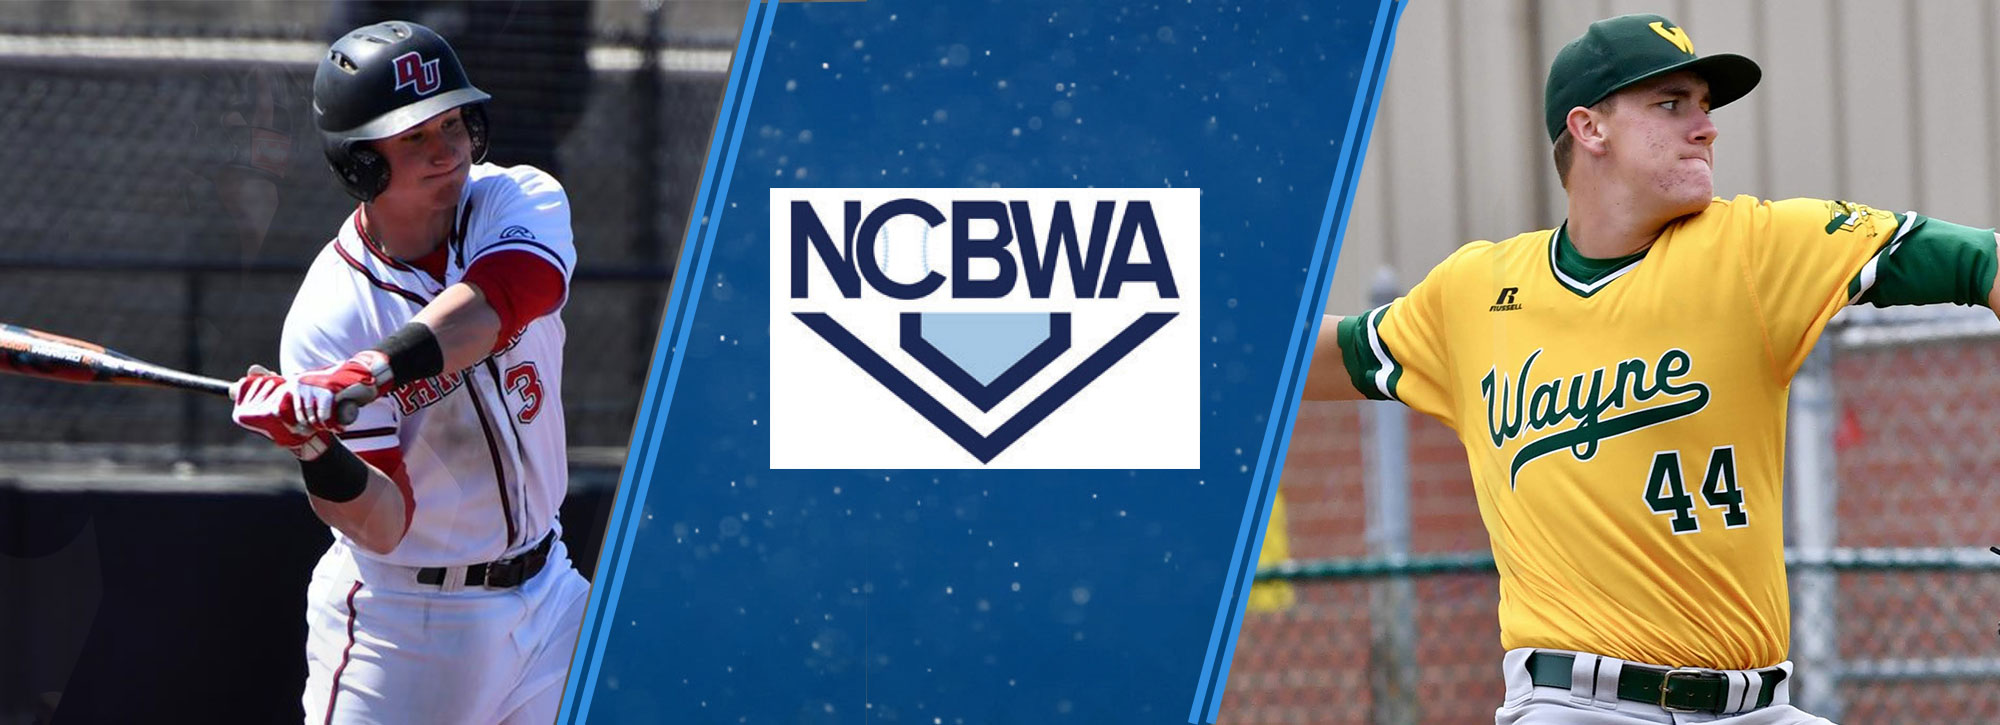 Davenport's Buchberger & Wayne State's Brown Garners NCBWA All-America Honors; Three Named Honorable Mention